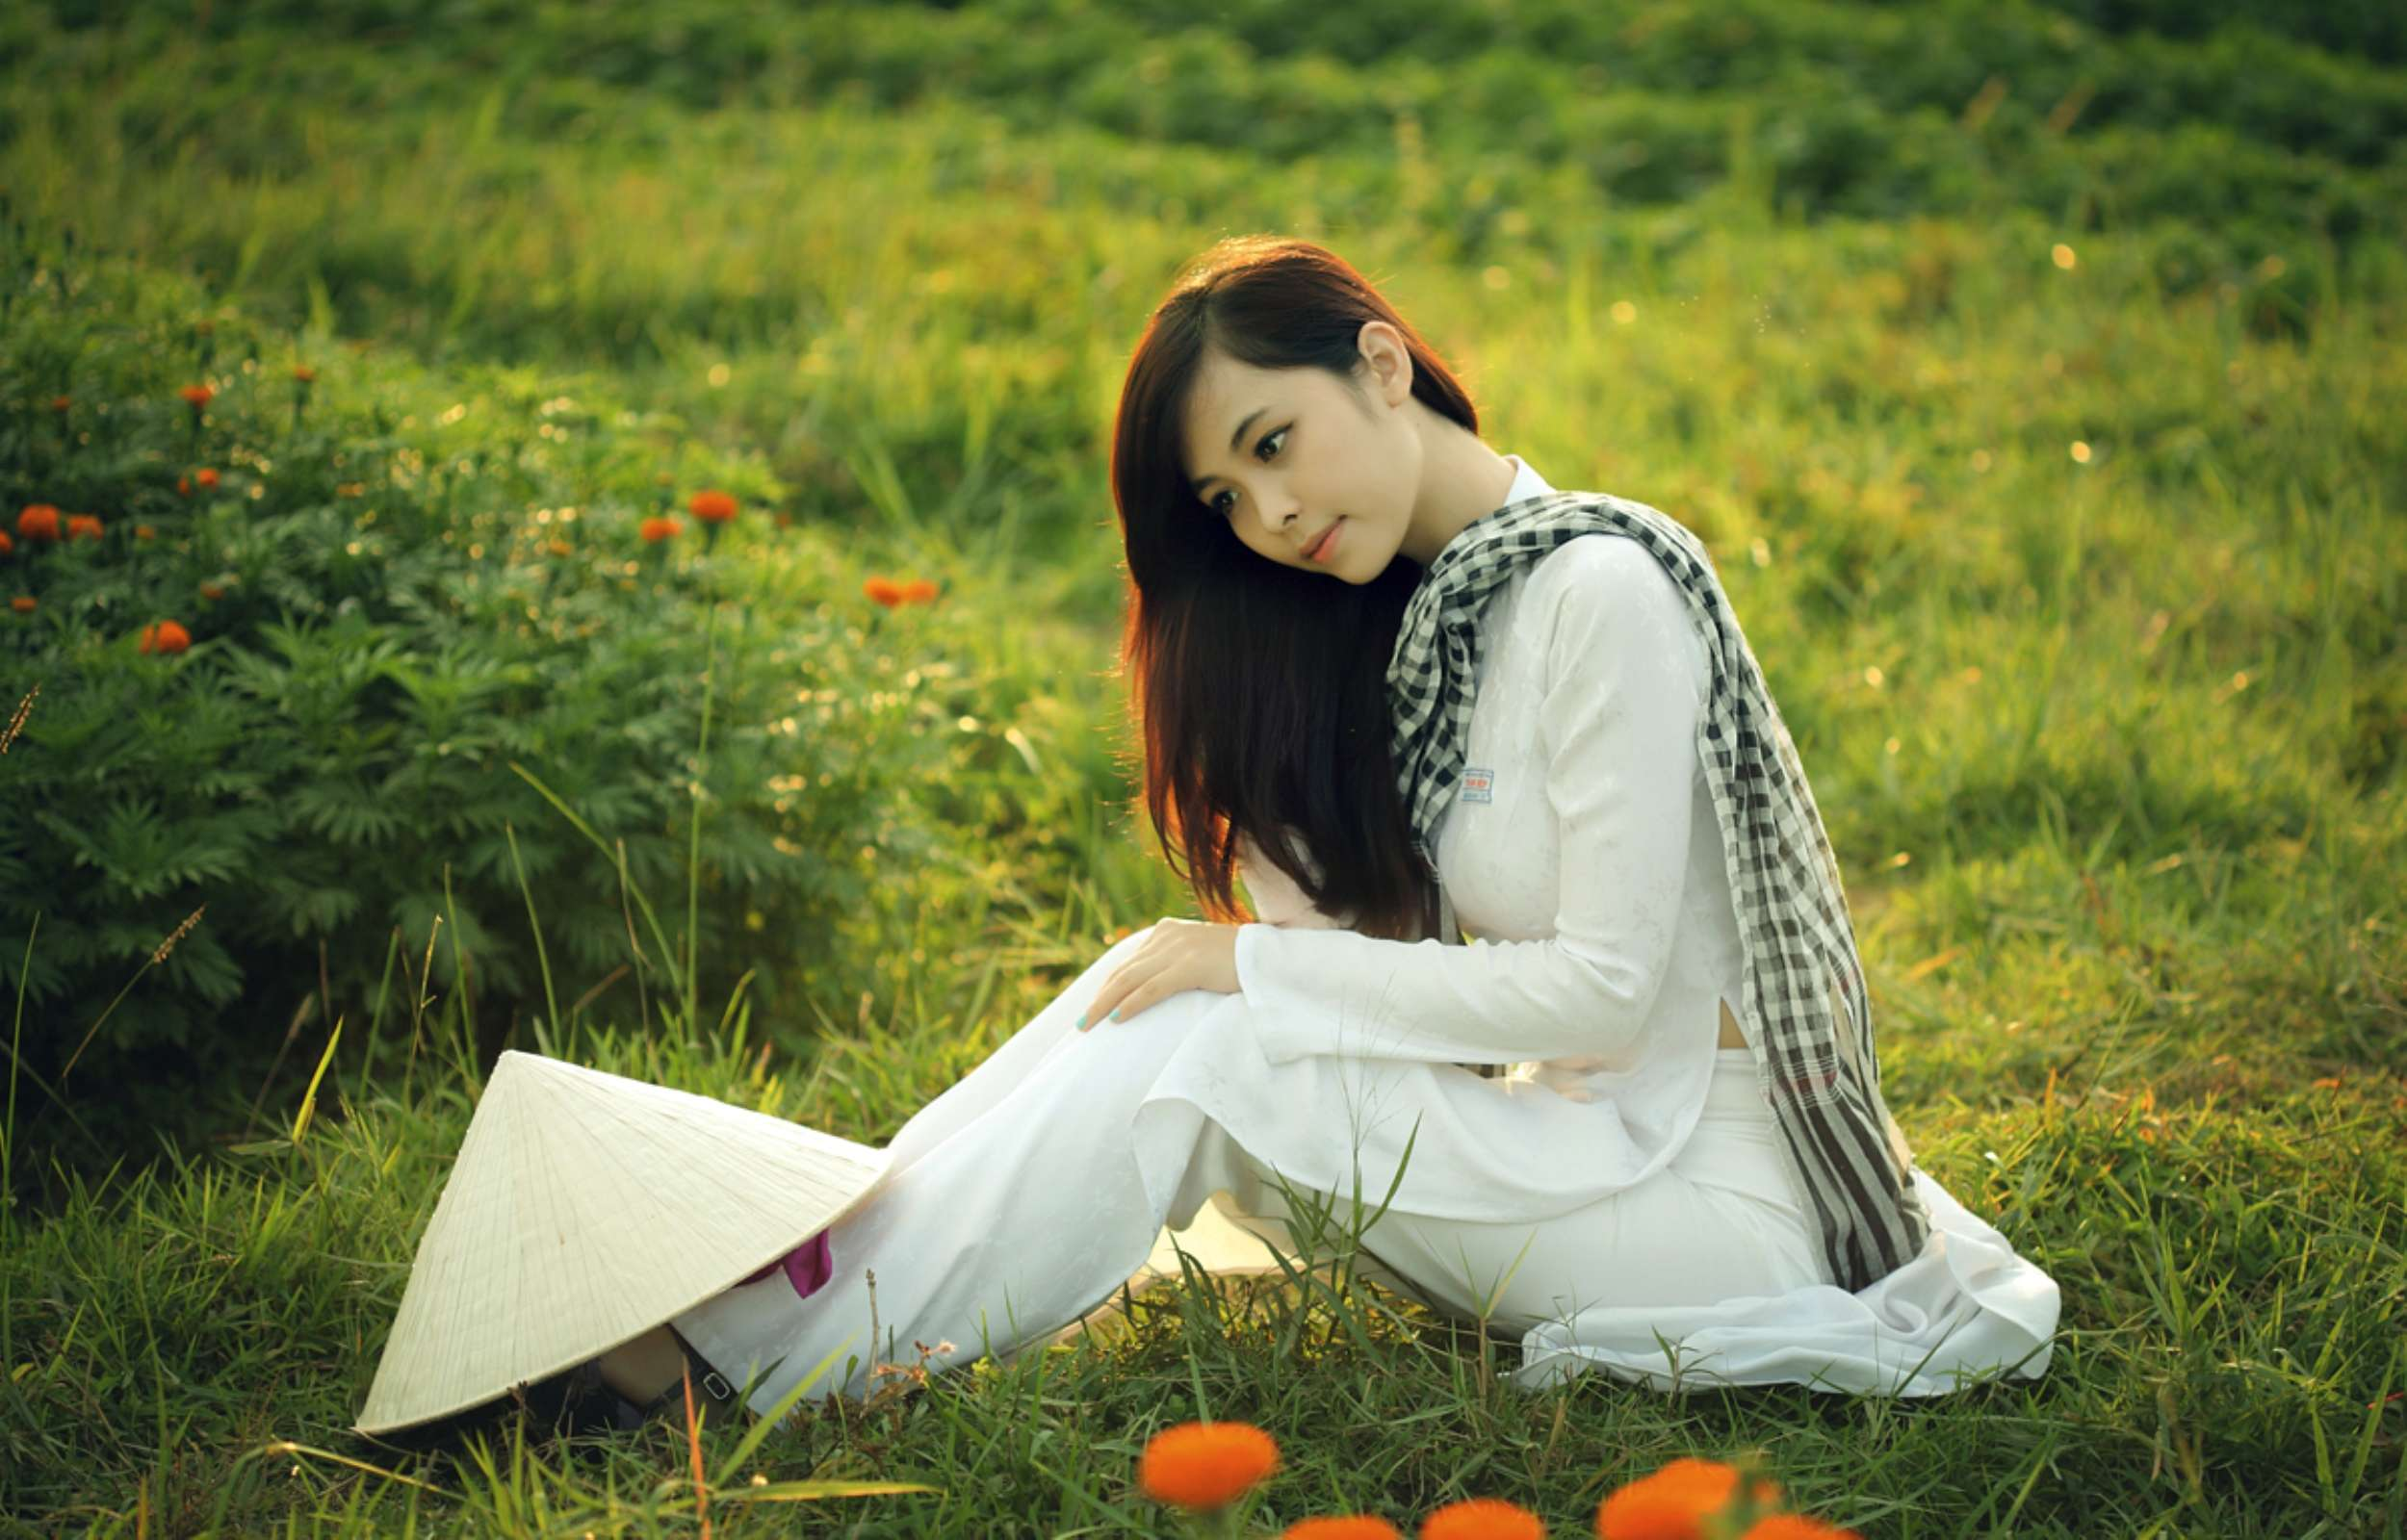 Beautiful Girl Sitting In A Field Wallpapers : Hd Wallpapers